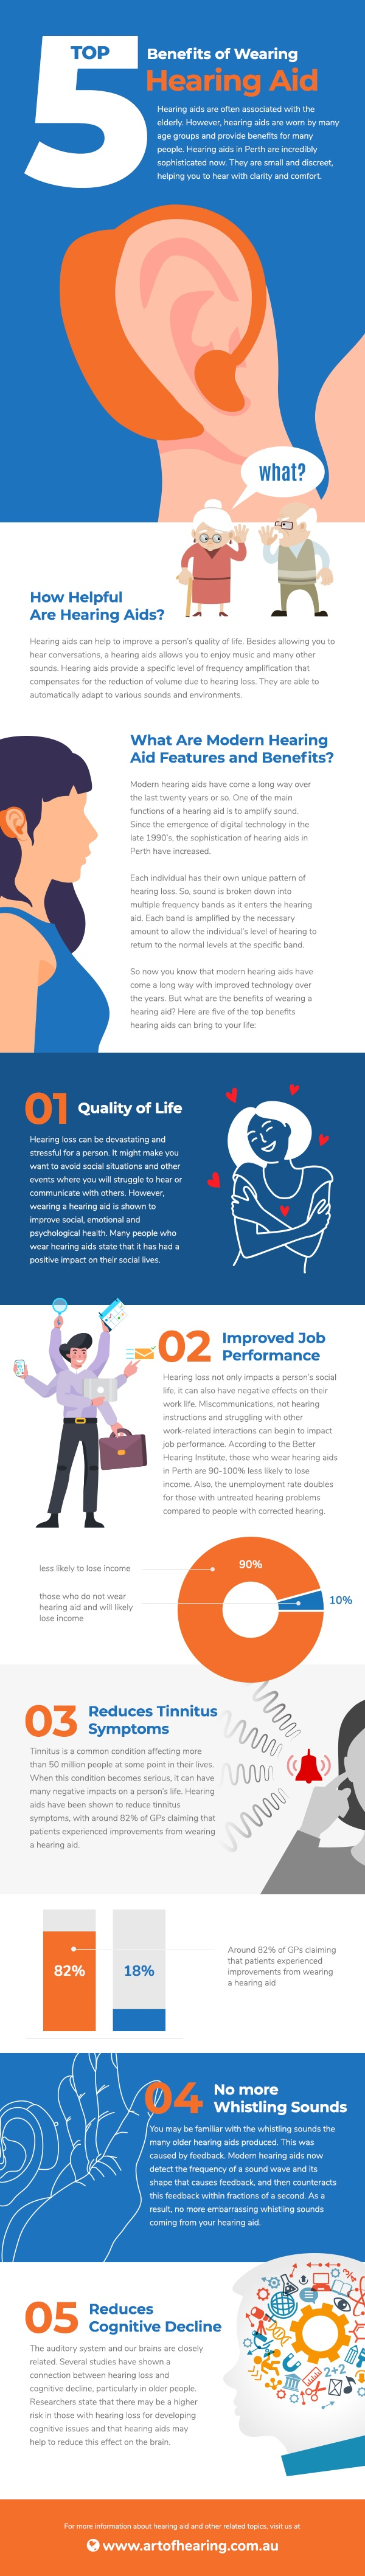 Top 5 benefits of wearing hearing aids - Infographic